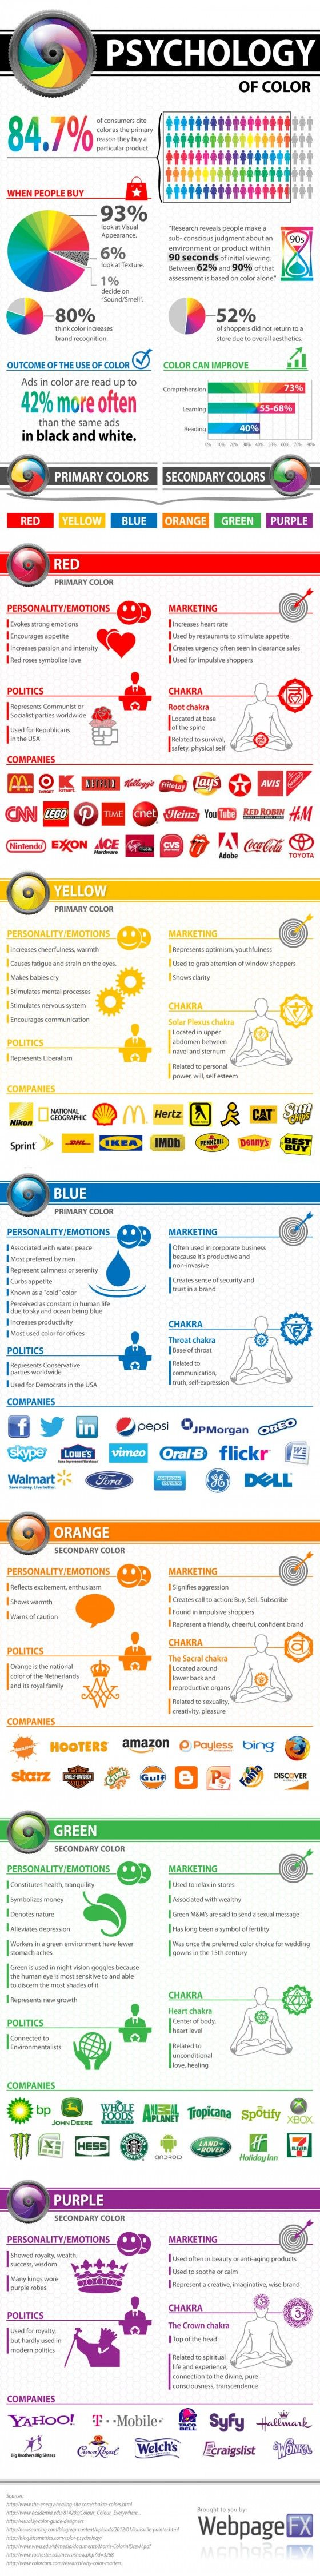 spychology of color, branding, marketing, politics, personality, emotions,